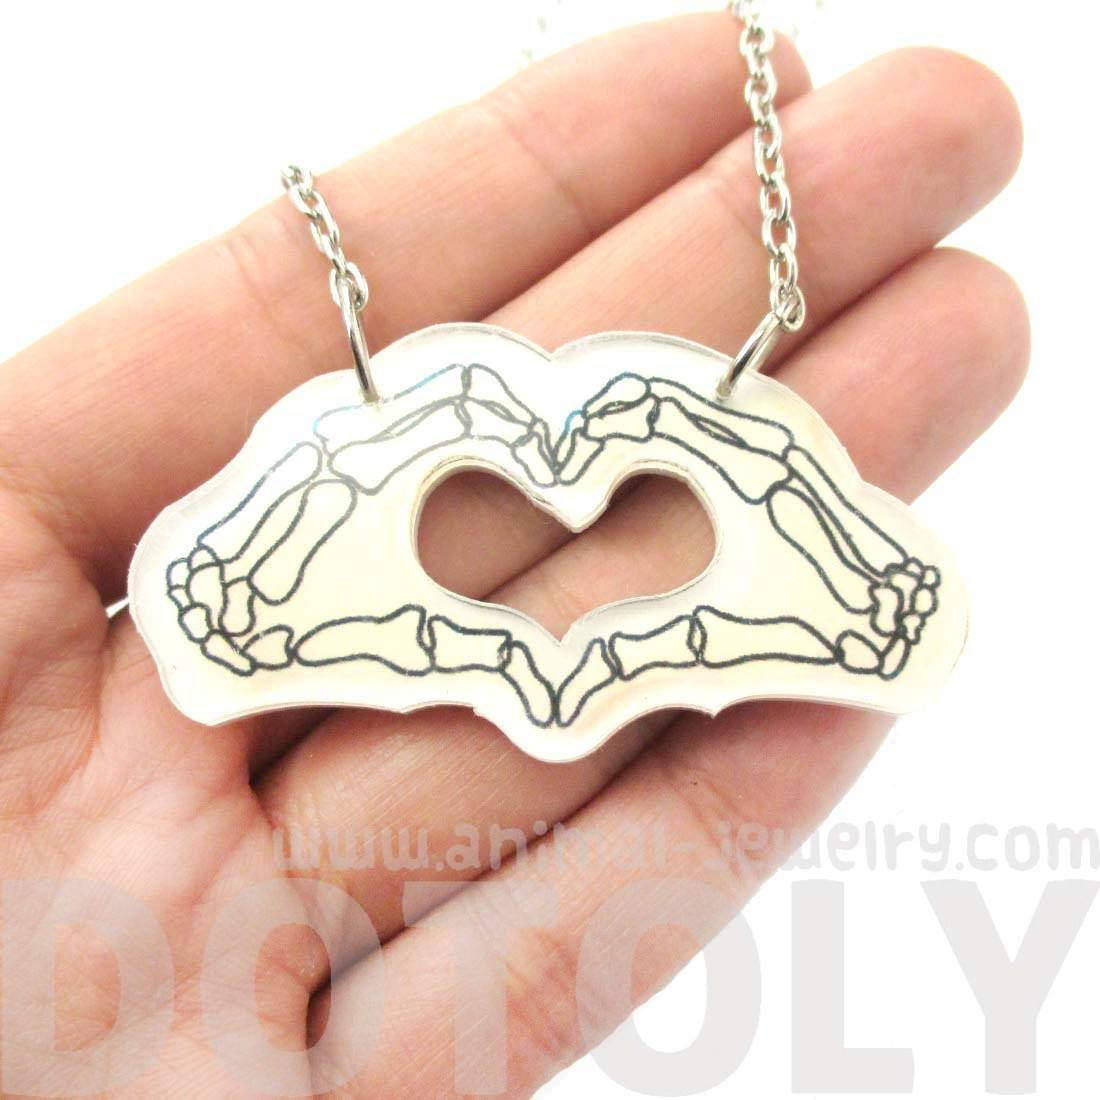 Skeleton Hands Forming an I Heart You Sign Shaped Necklace in Acrylic